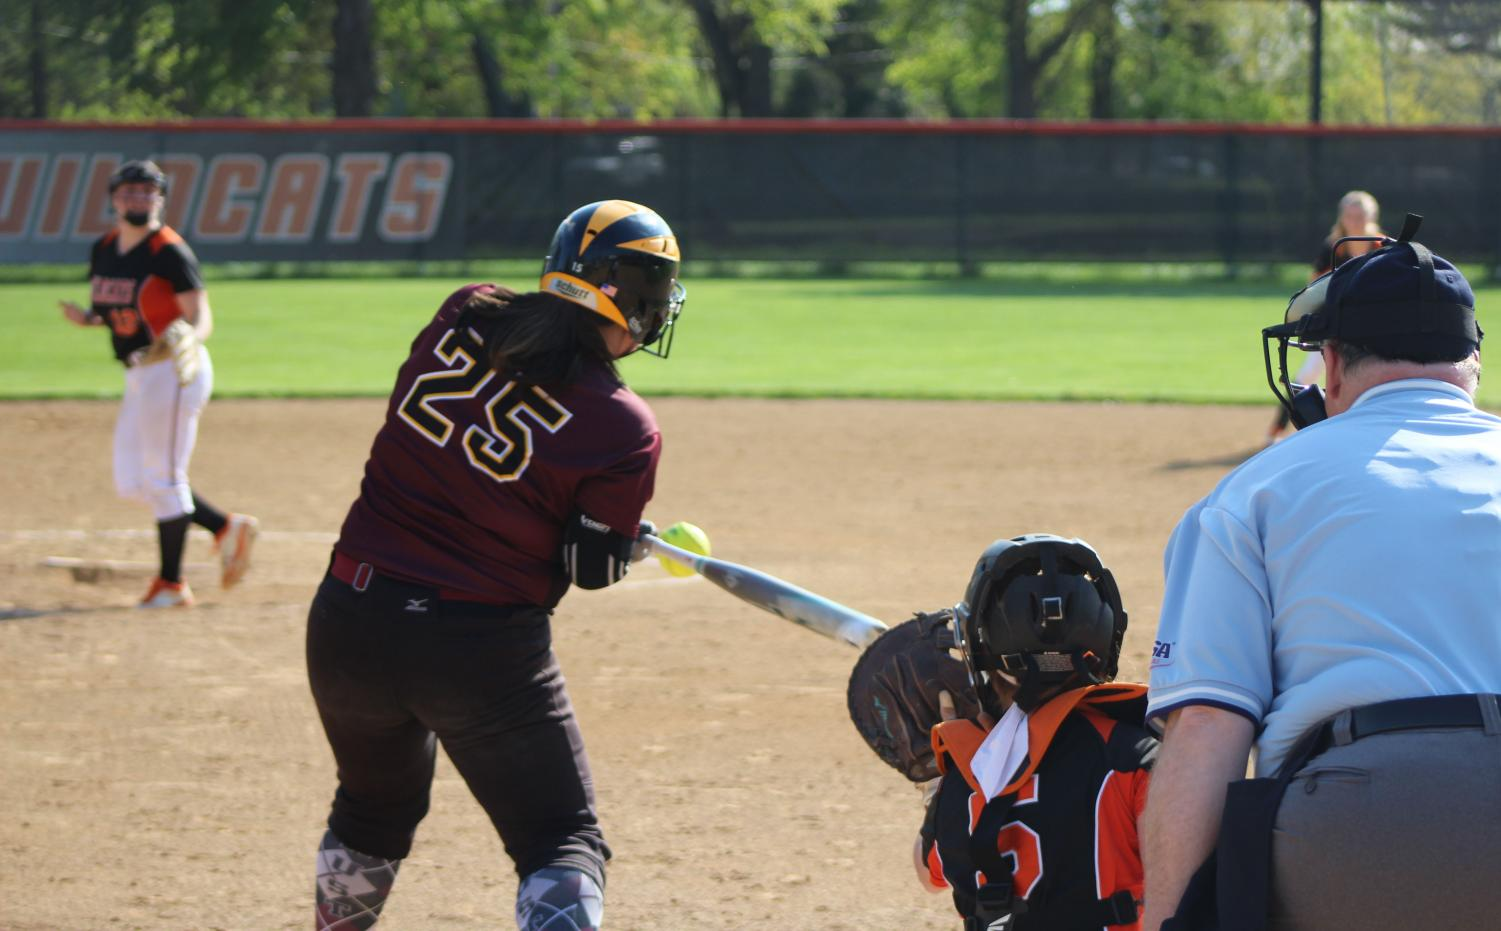 Senior+pitcher+Amanda+Page+pitches+the+ball+to+Zion%E2%80%99s+first+baseman%2C+Jenna+Villalobos%2C+who+got+a+hit+in+this+at+bat.+